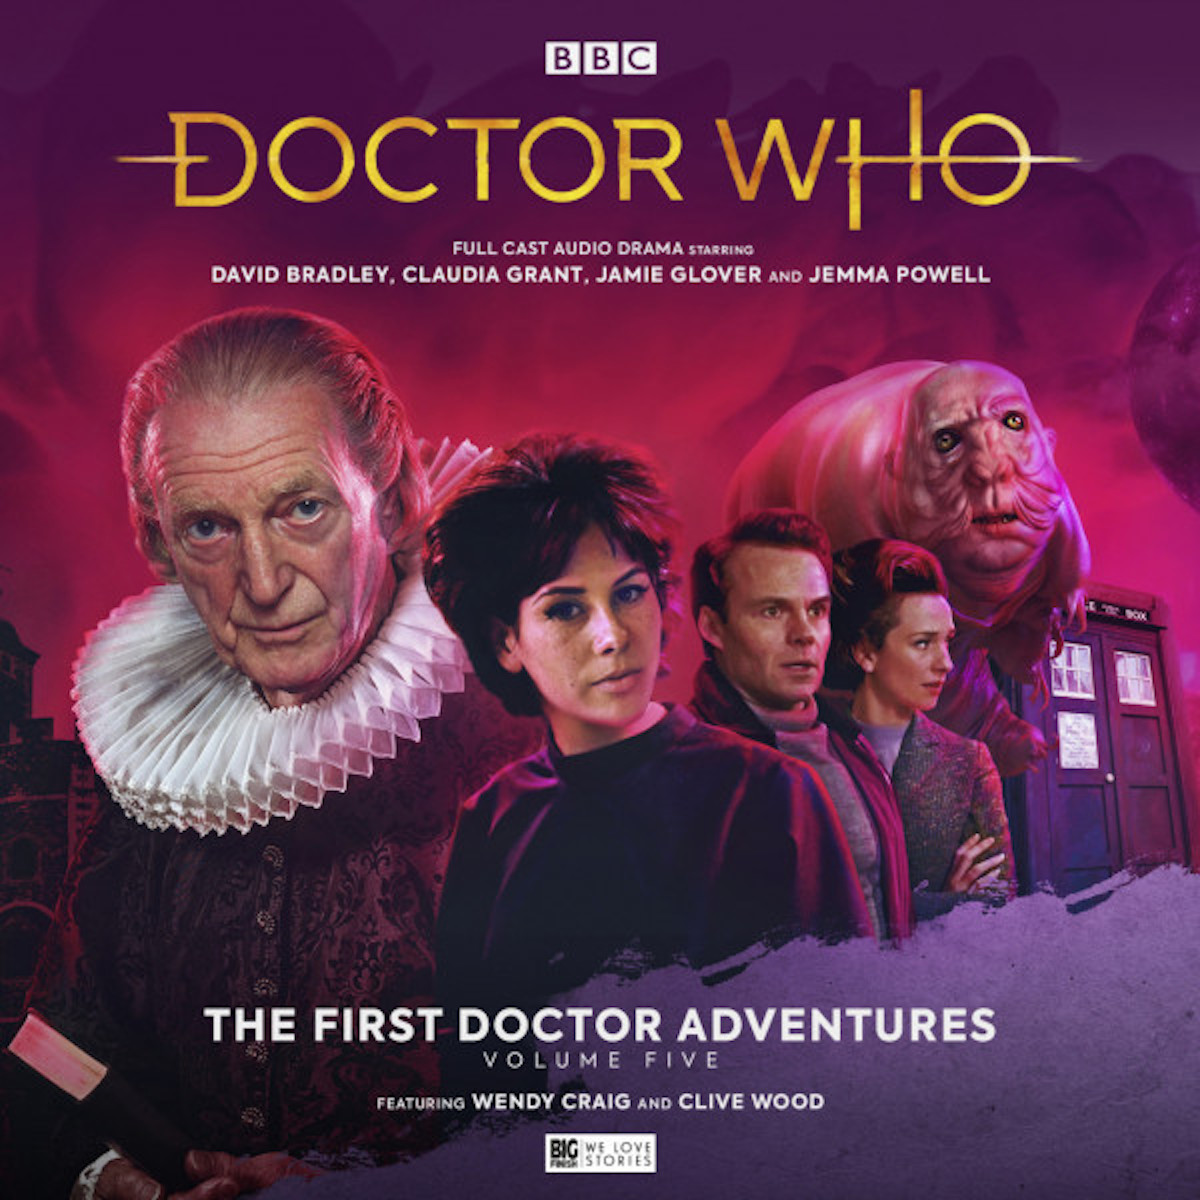 The First Doctor Adventures Volume 5